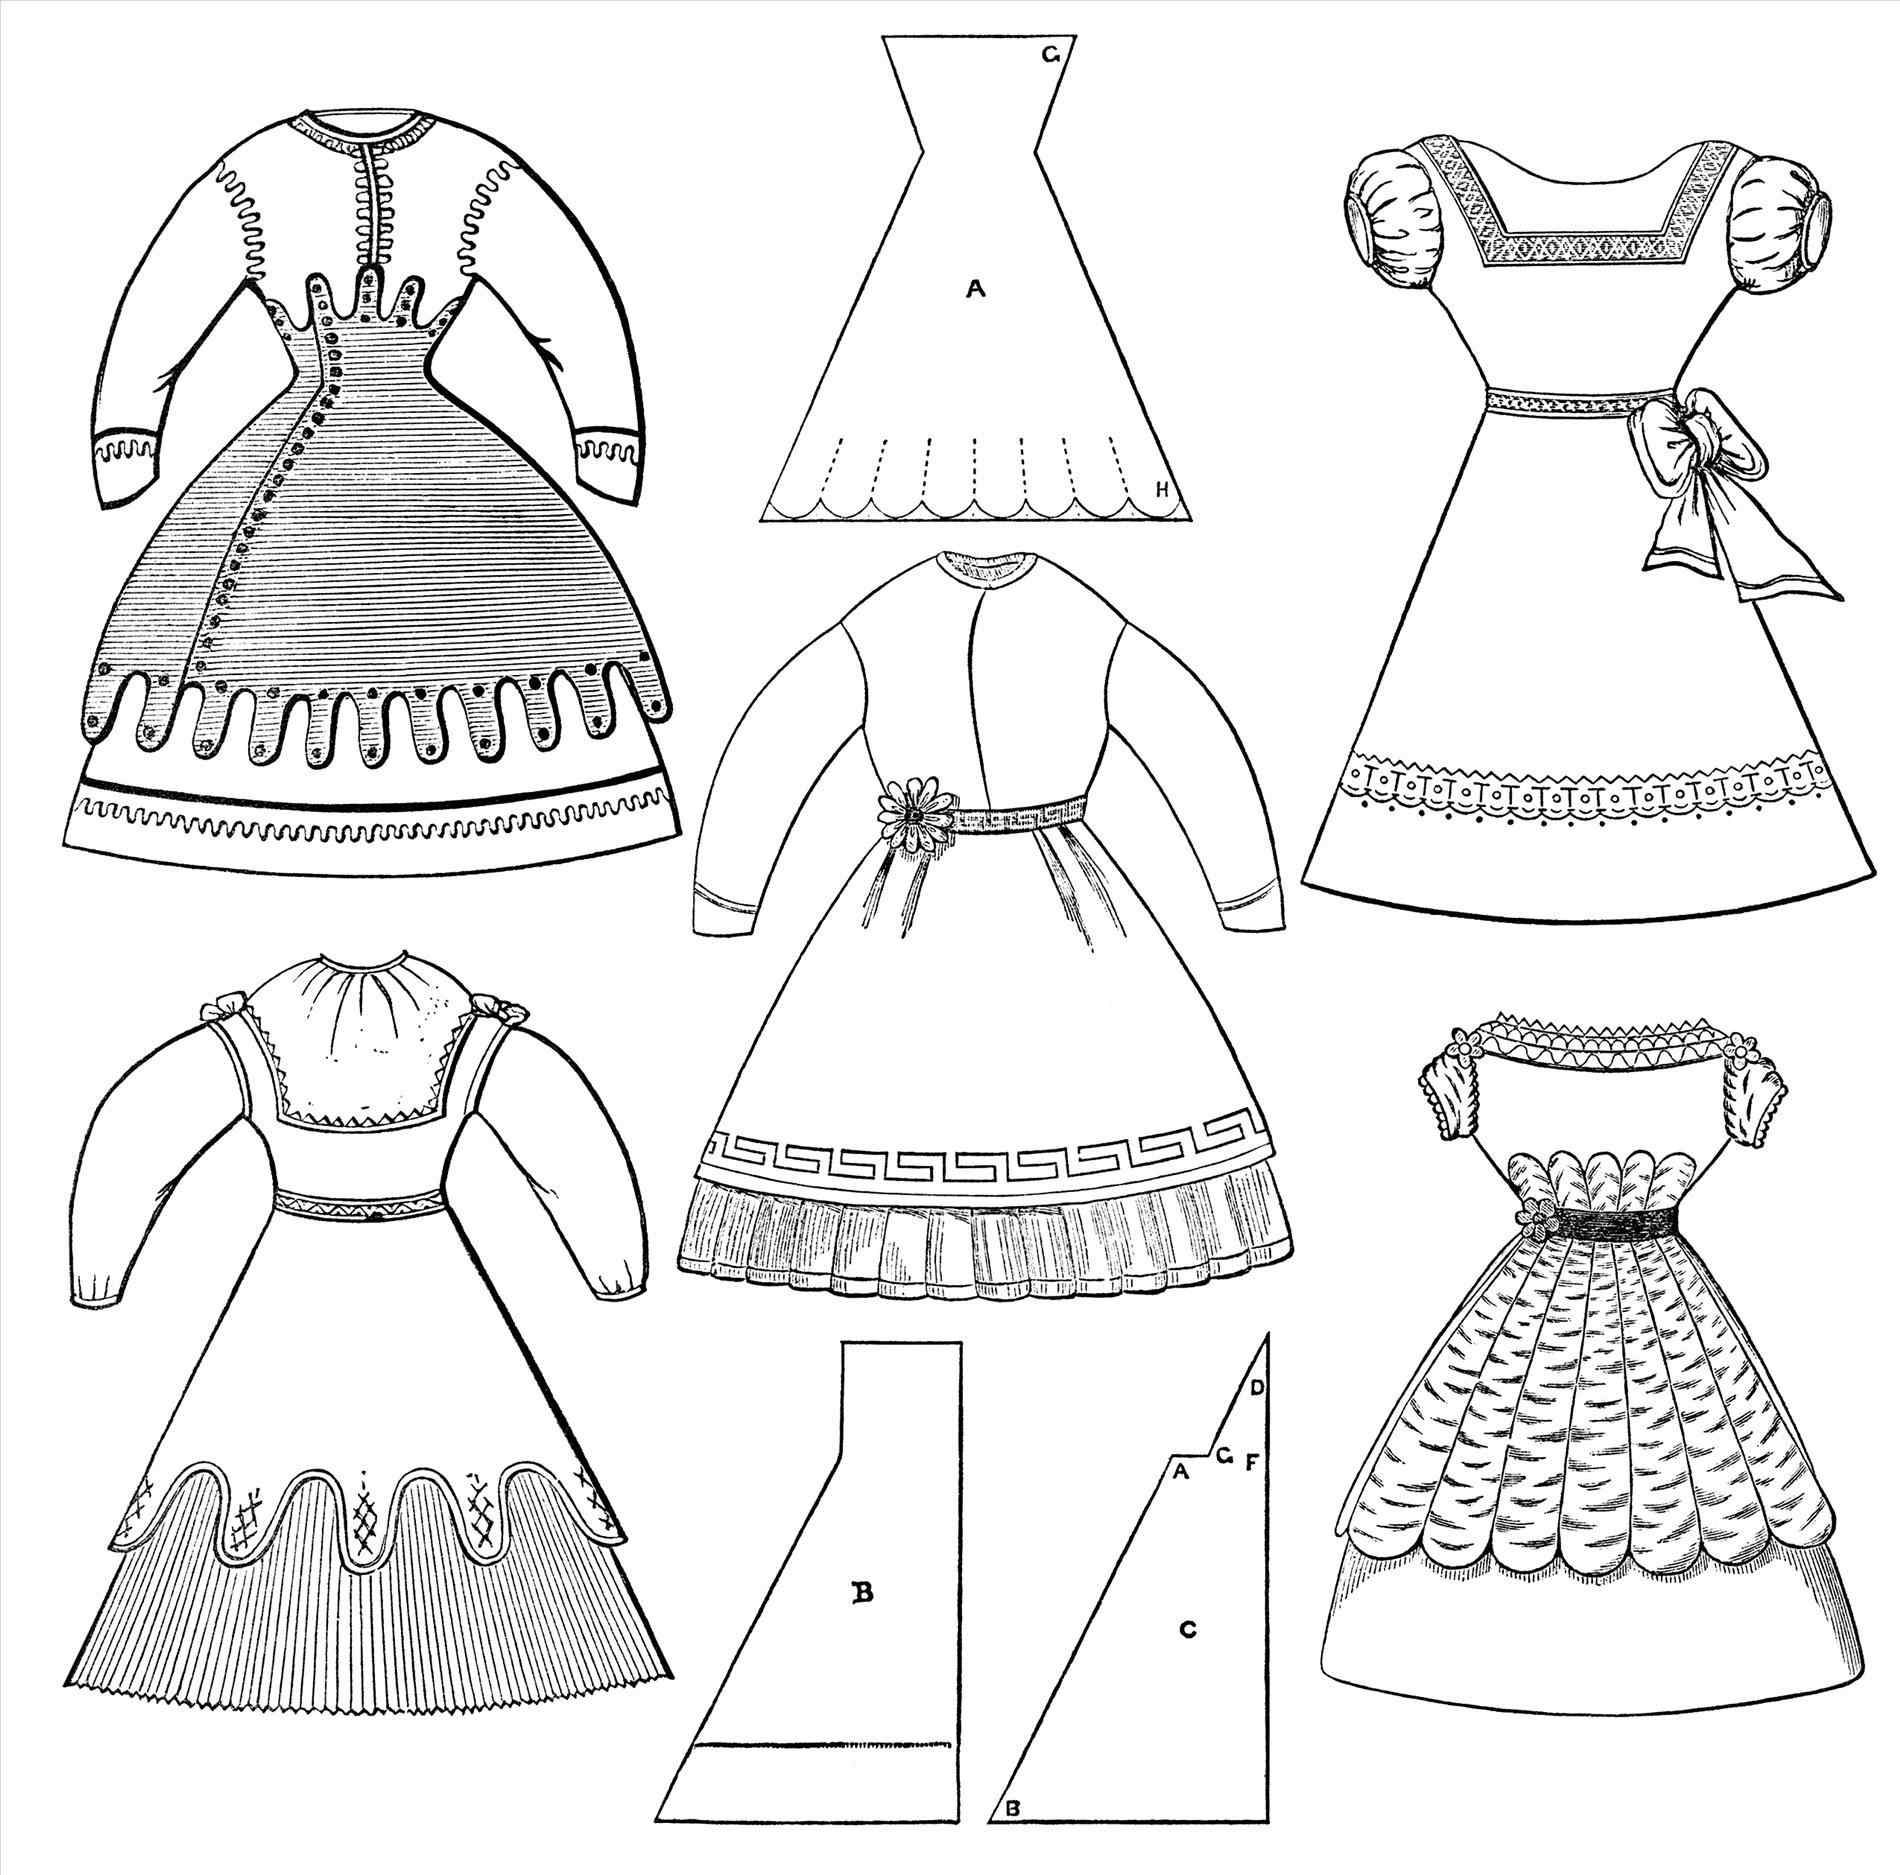 Kids clothing clipart dress black and white clip art royalty free download Art Kids Clothes Clipart Black And White Dress ... clip art royalty free download